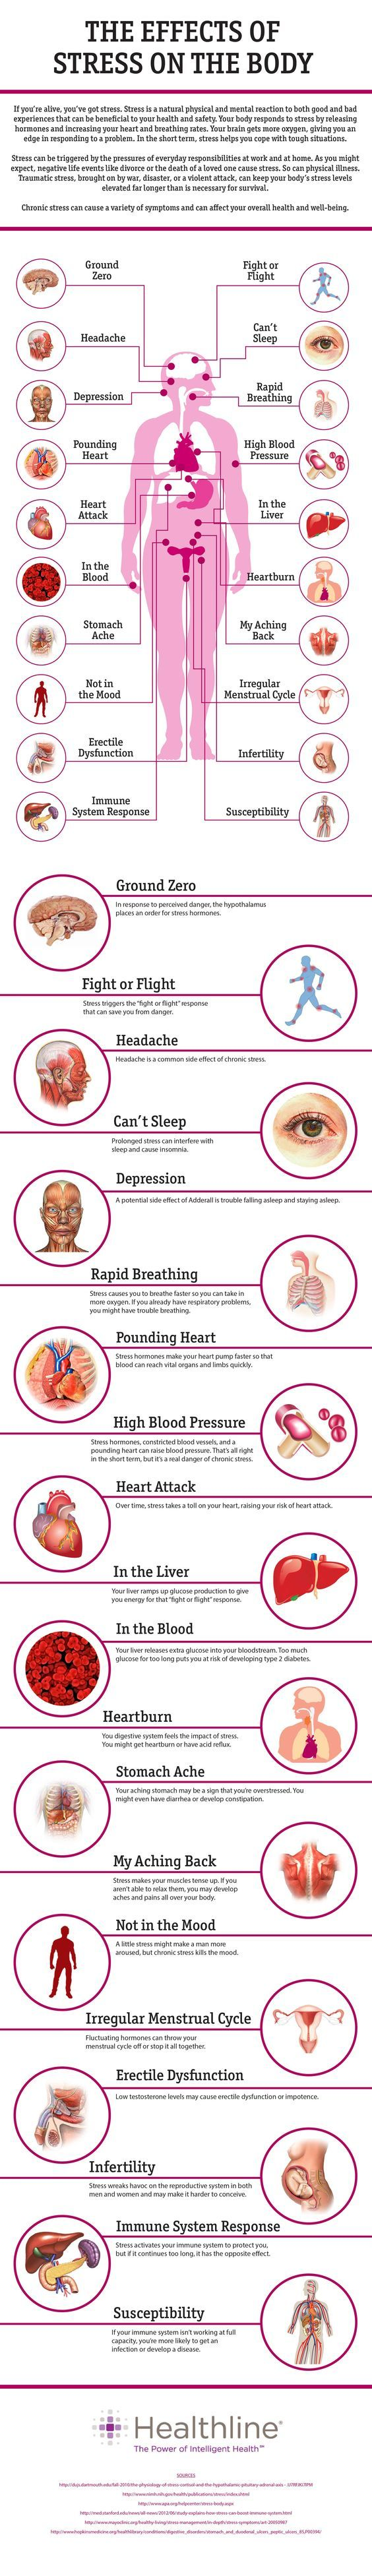 The Effects of Stress on the Body: